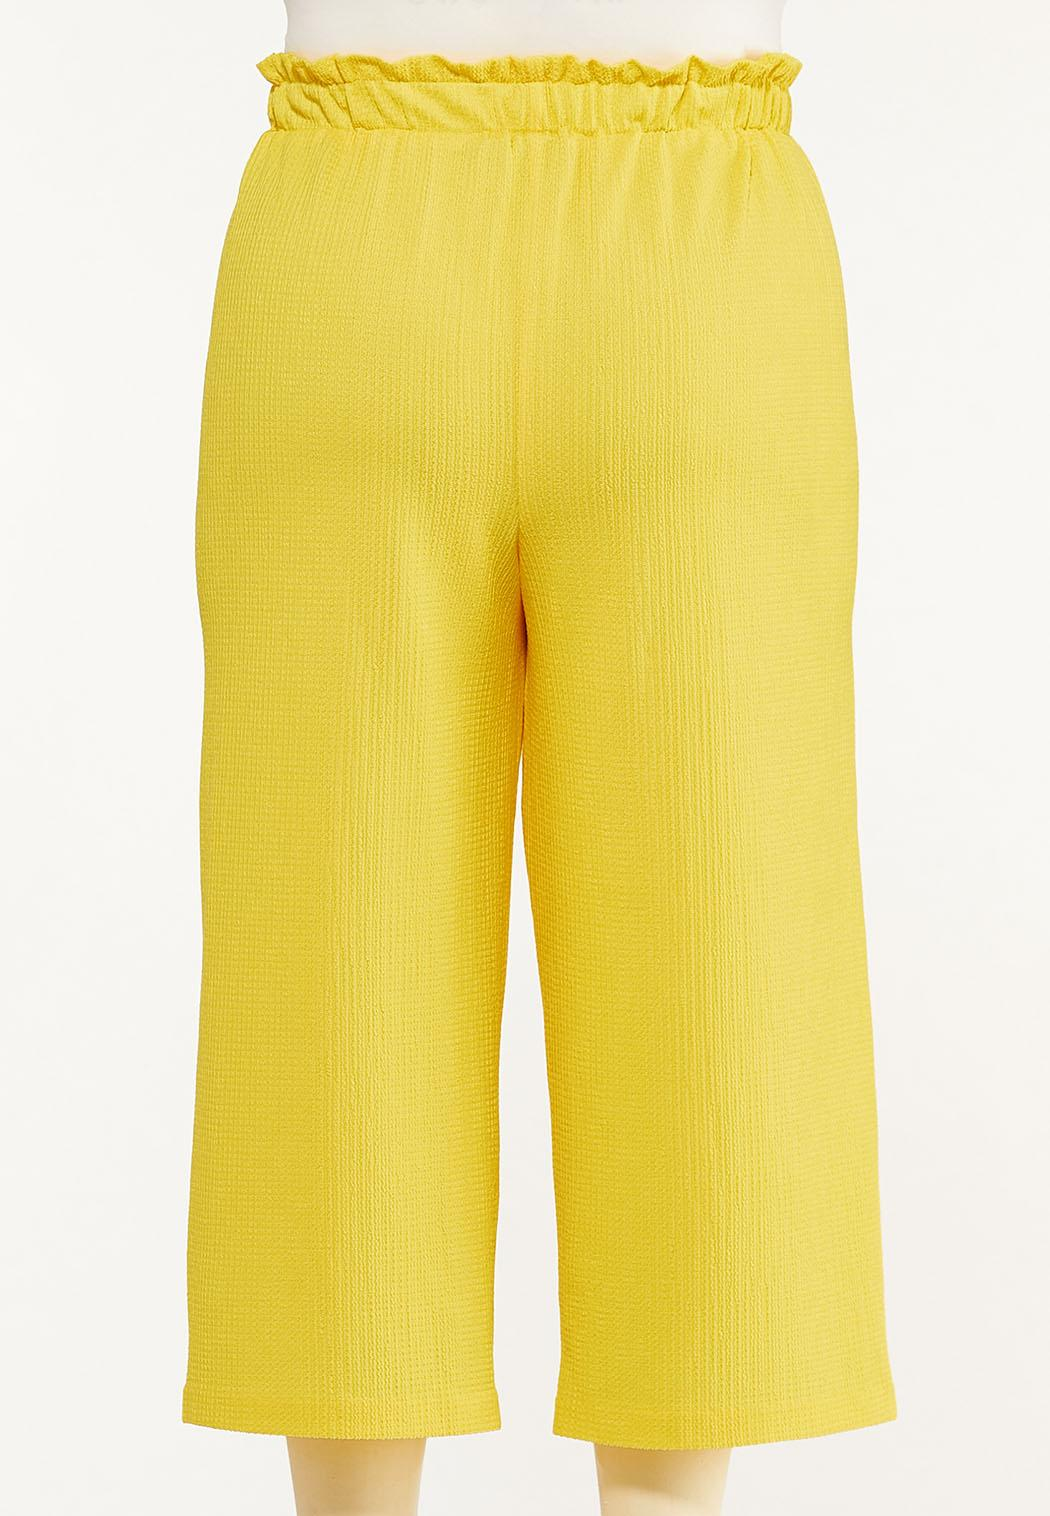 Plus Size Cropped Solid Textured Pants (Item #44547989)